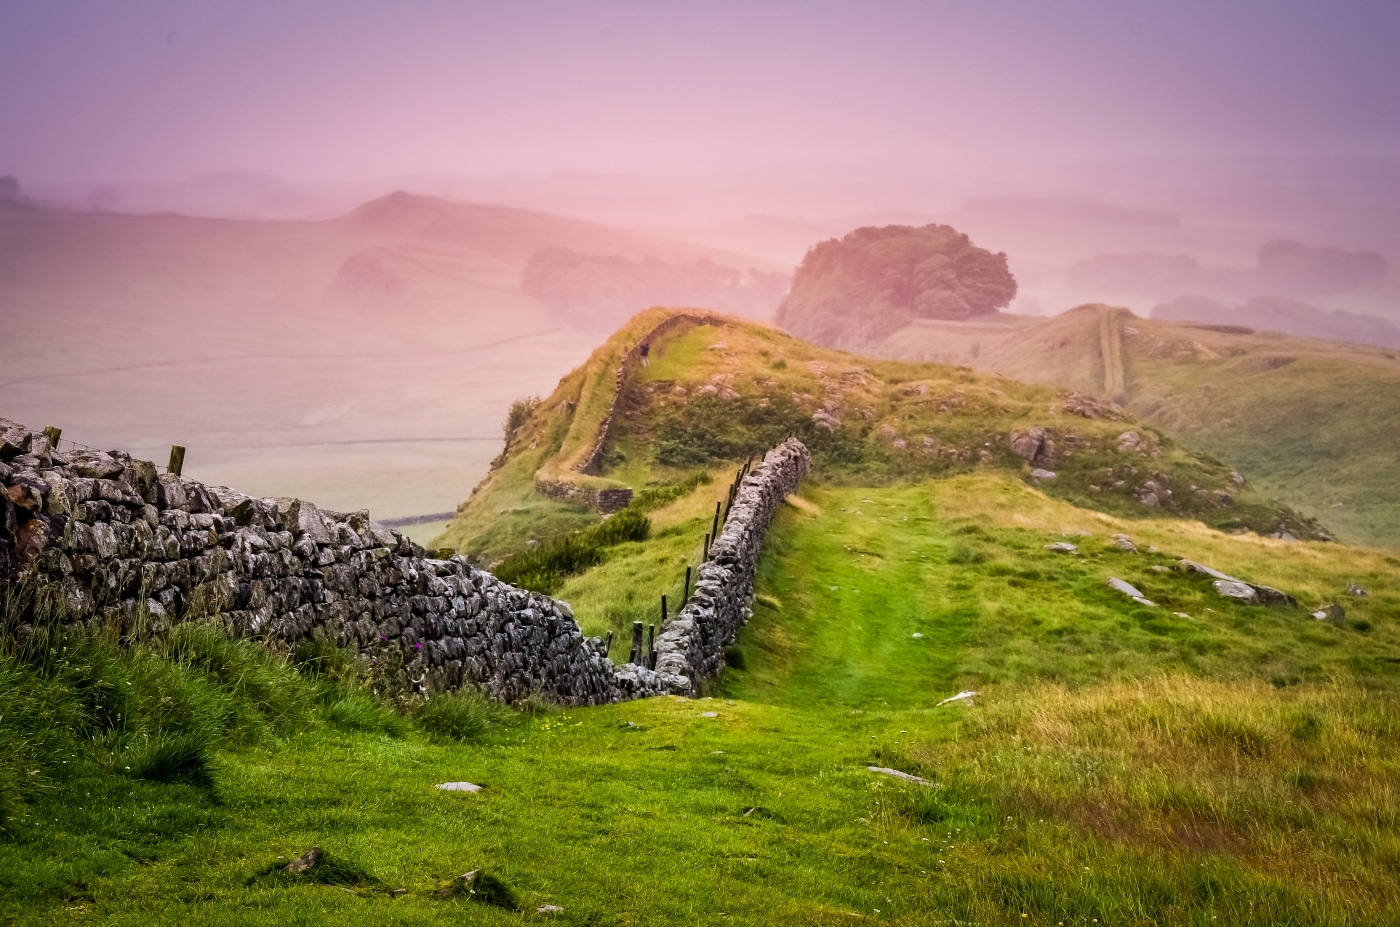 Hadrians Wall in England